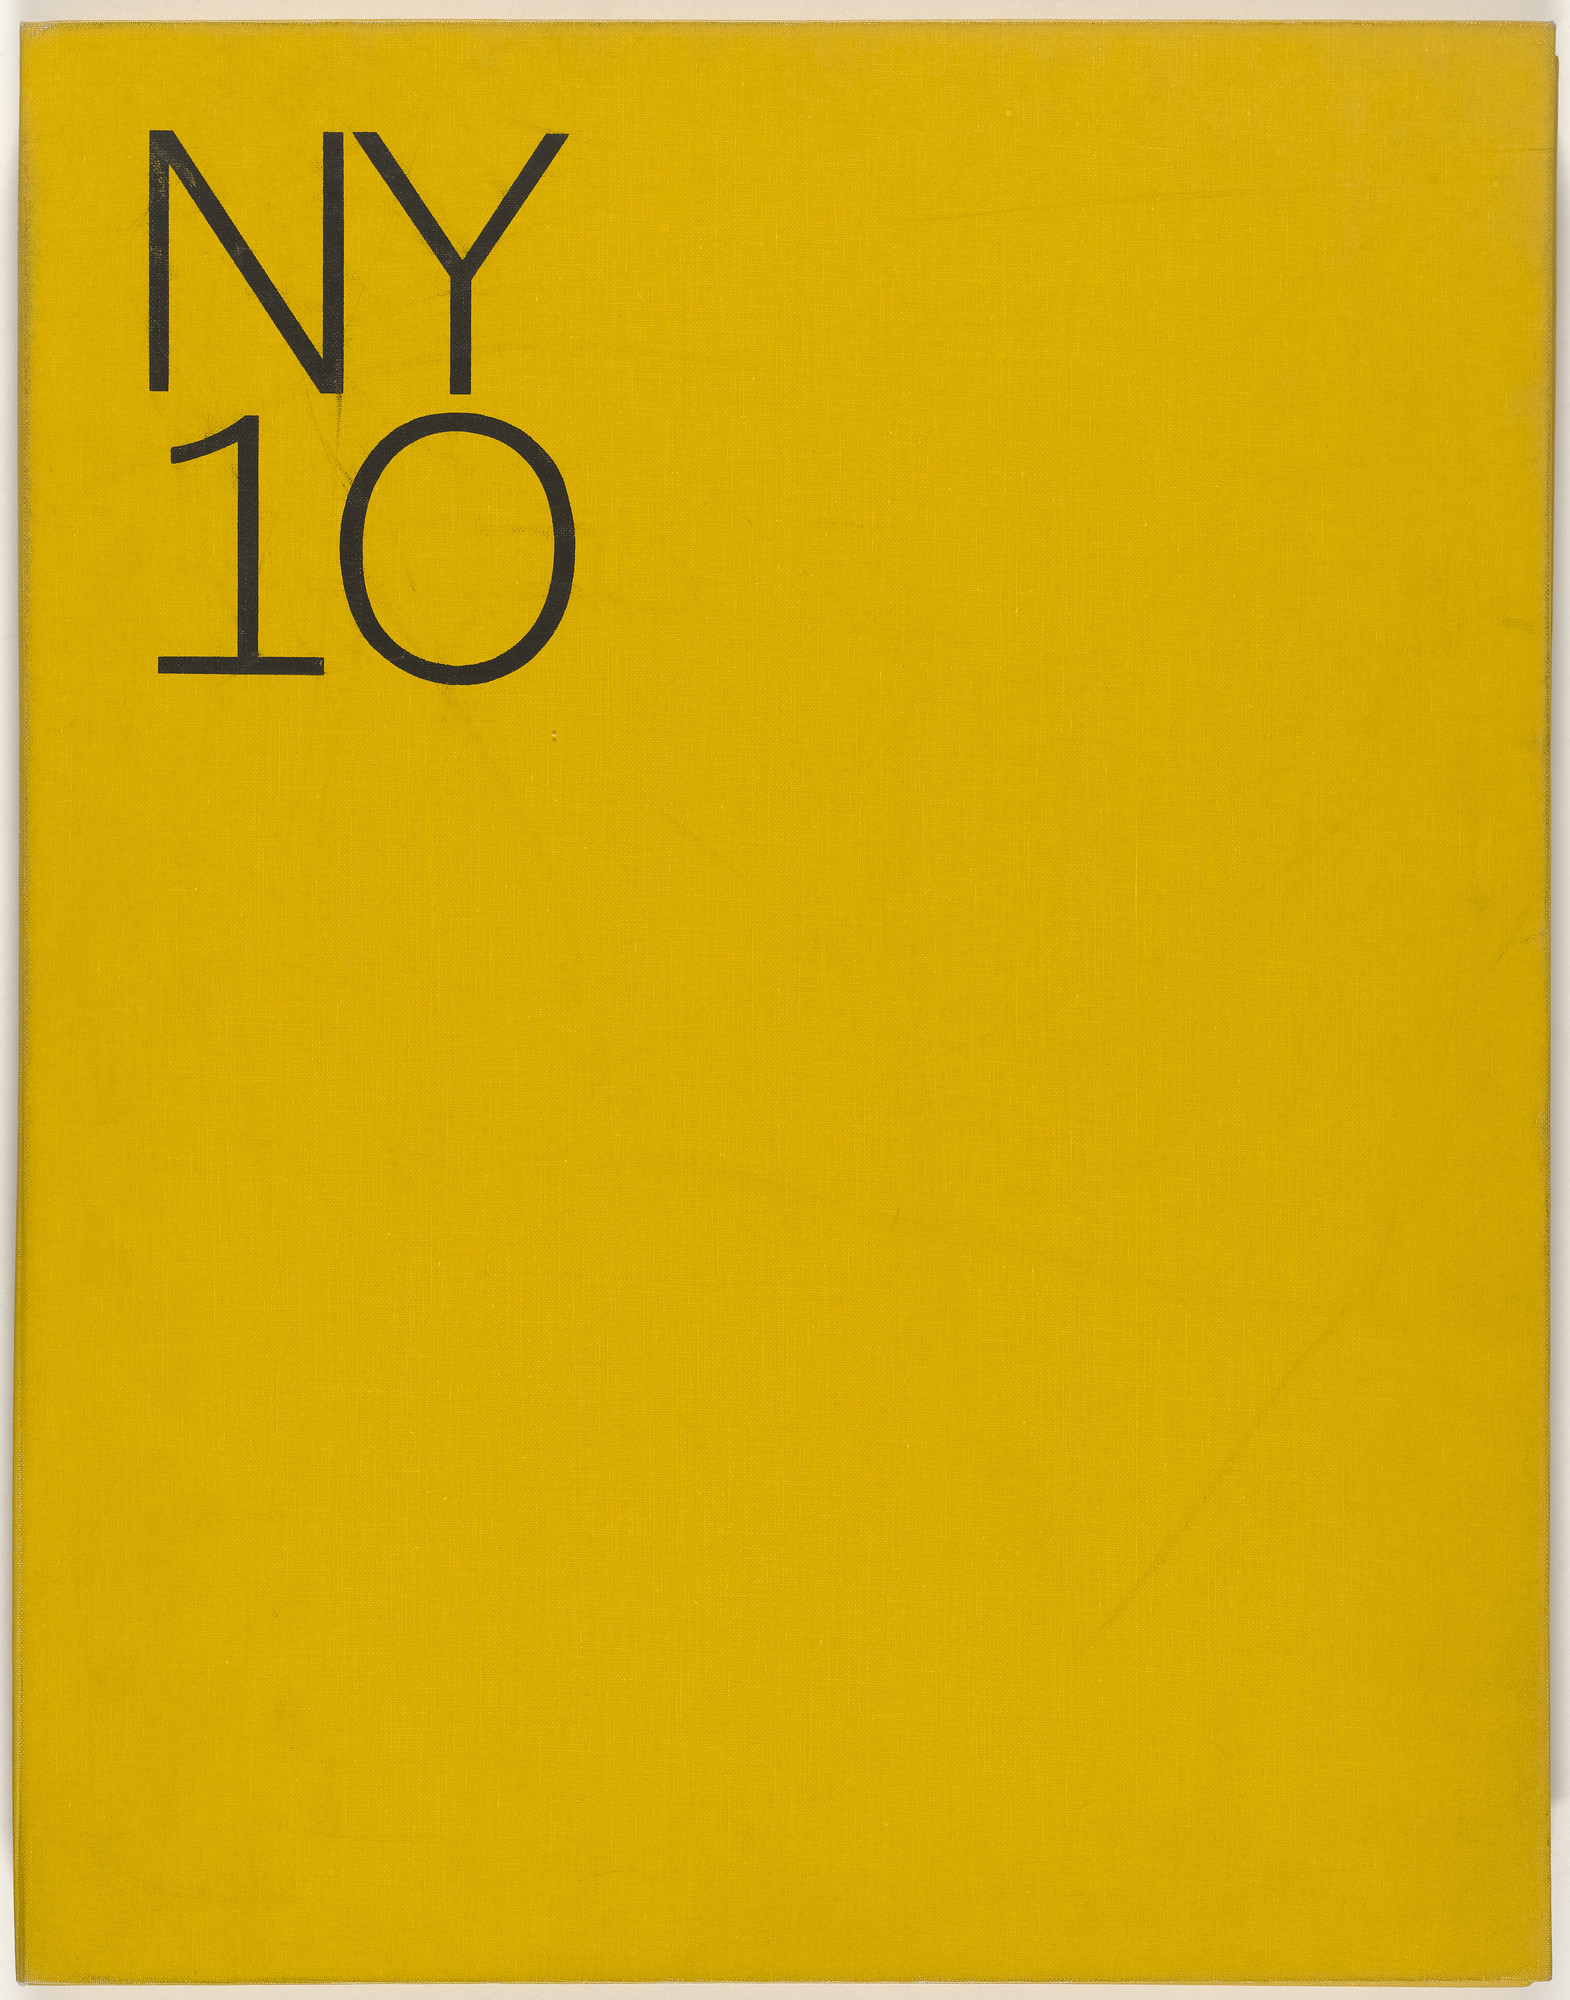 Various Artists, Tom Wesselmann, George Segal, Claes Oldenburg, Roy Lichtenstein, Mon Levinson, Robert Kulicke, Nicholas Krushenick, Helen Frankenthaler, Jim Dine, Richard Anuszkiewicz. New York Ten. 1964–65, published 1965